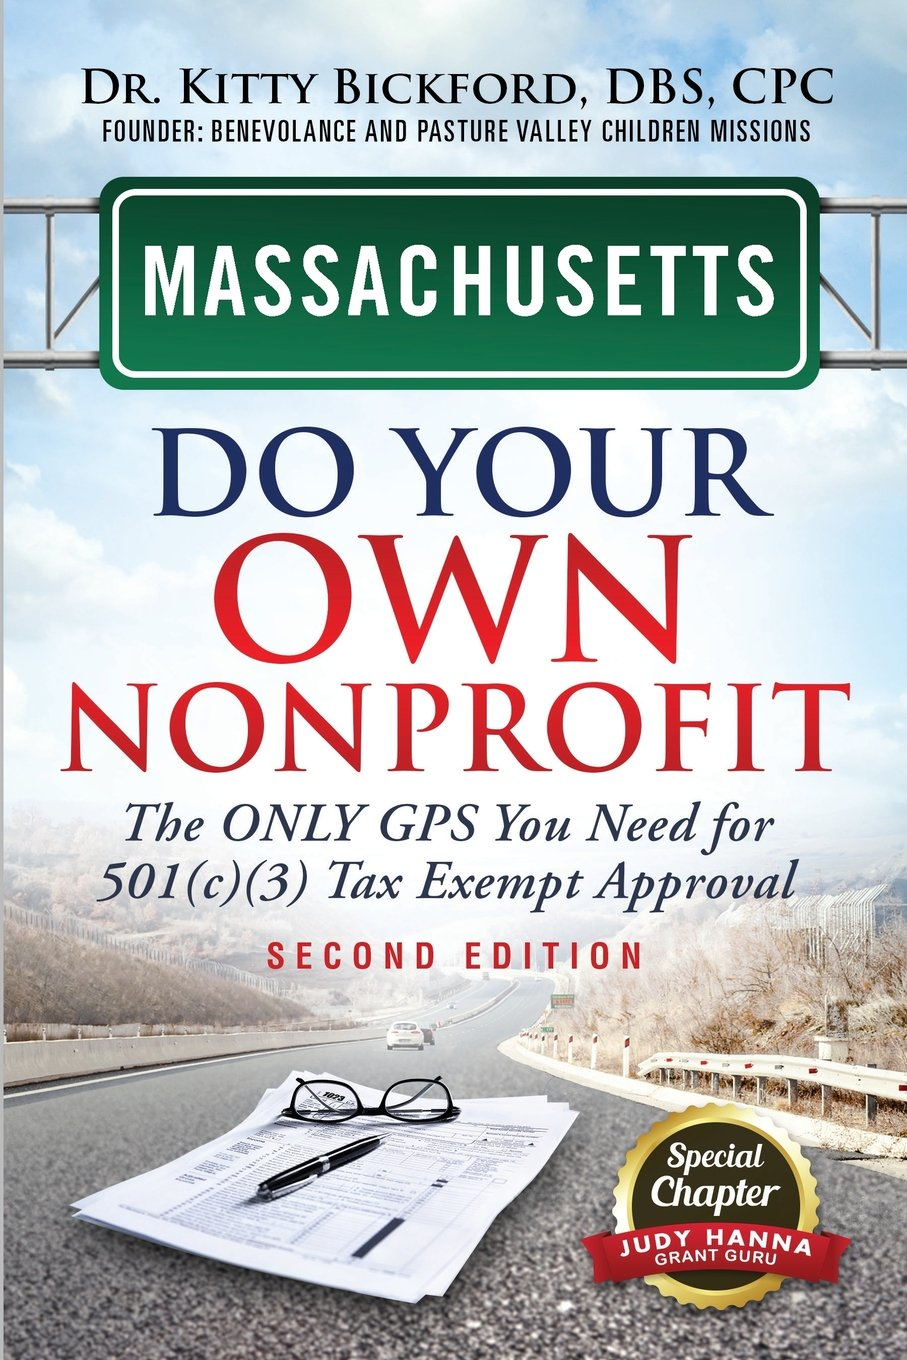 Download Massachusetts Do Your Own Nonprofit: The Only GPS You Need For 501c3 Tax Exempt Approval ebook